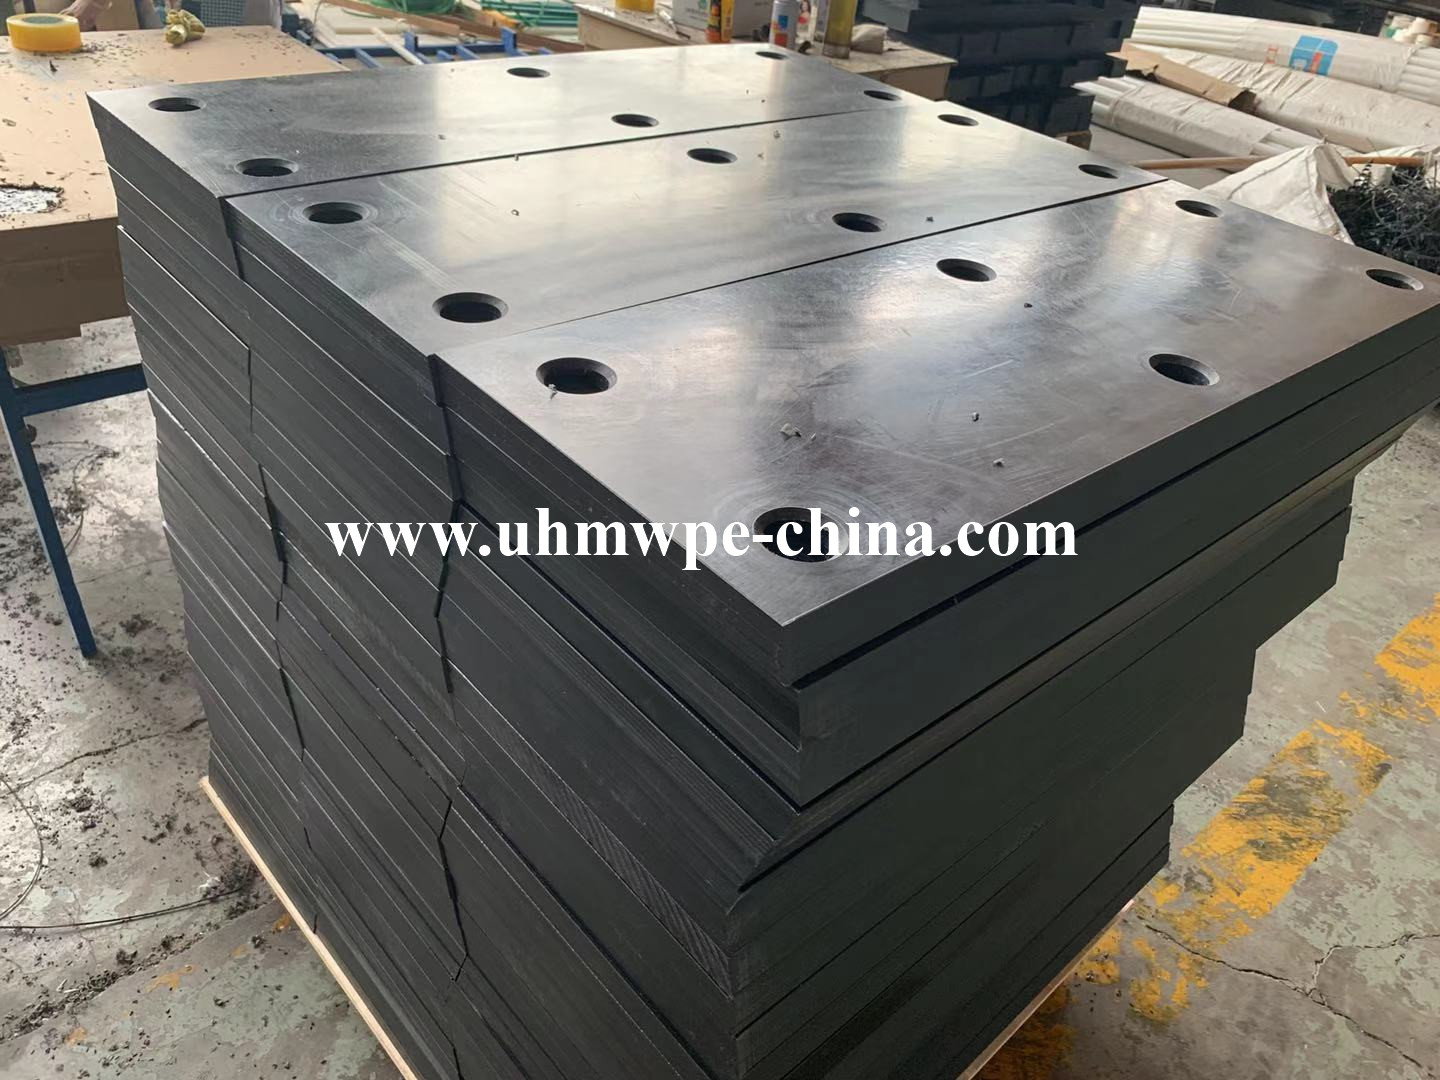 Virgin UHMWPE Facing Fender Pad